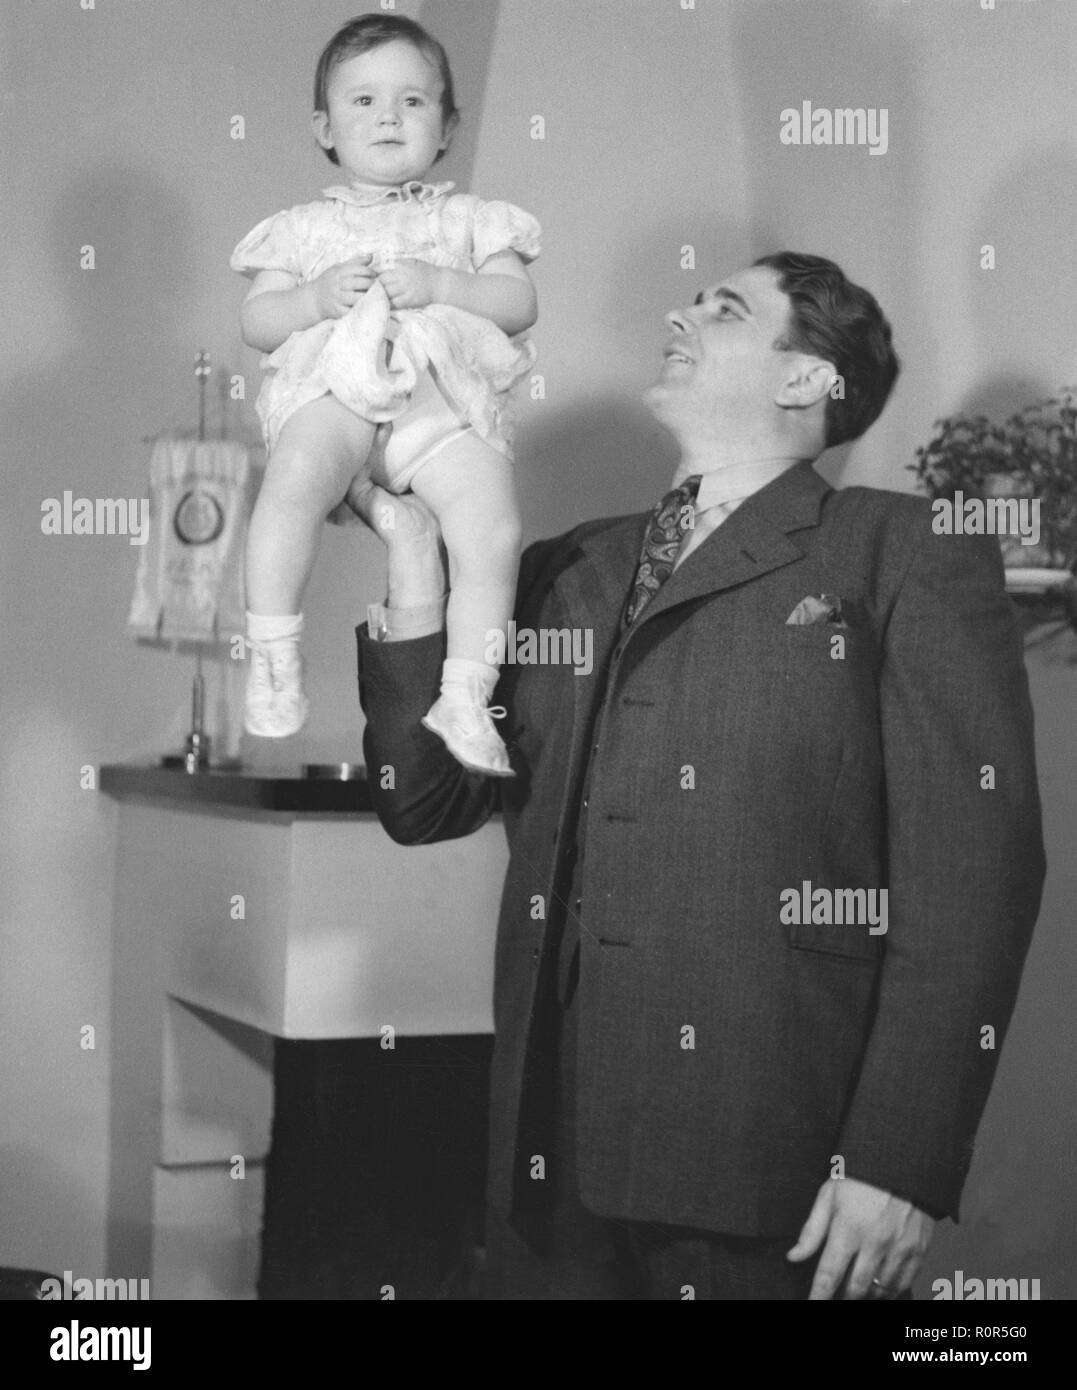 Father and child. Opera singer Erik Konrad 'Conny' Söderström (1911 -1972) with his child whom he is balancing on his arm and hand. Sweden 1940s - Stock Image